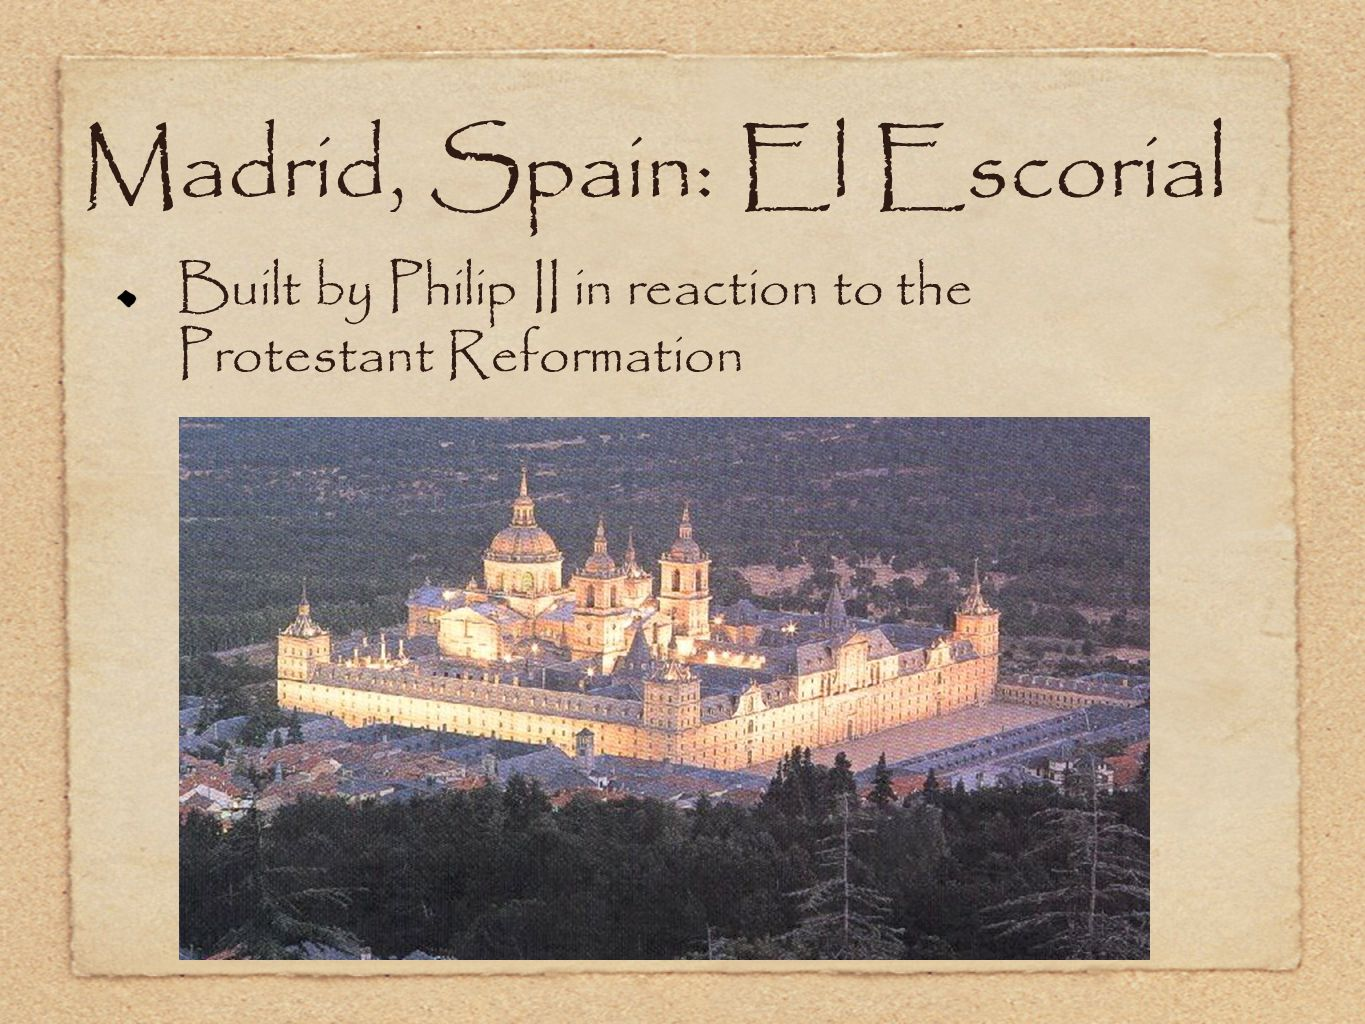 Madrid, Spain: El Escorial Built by Philip II in reaction to the Protestant Reformation